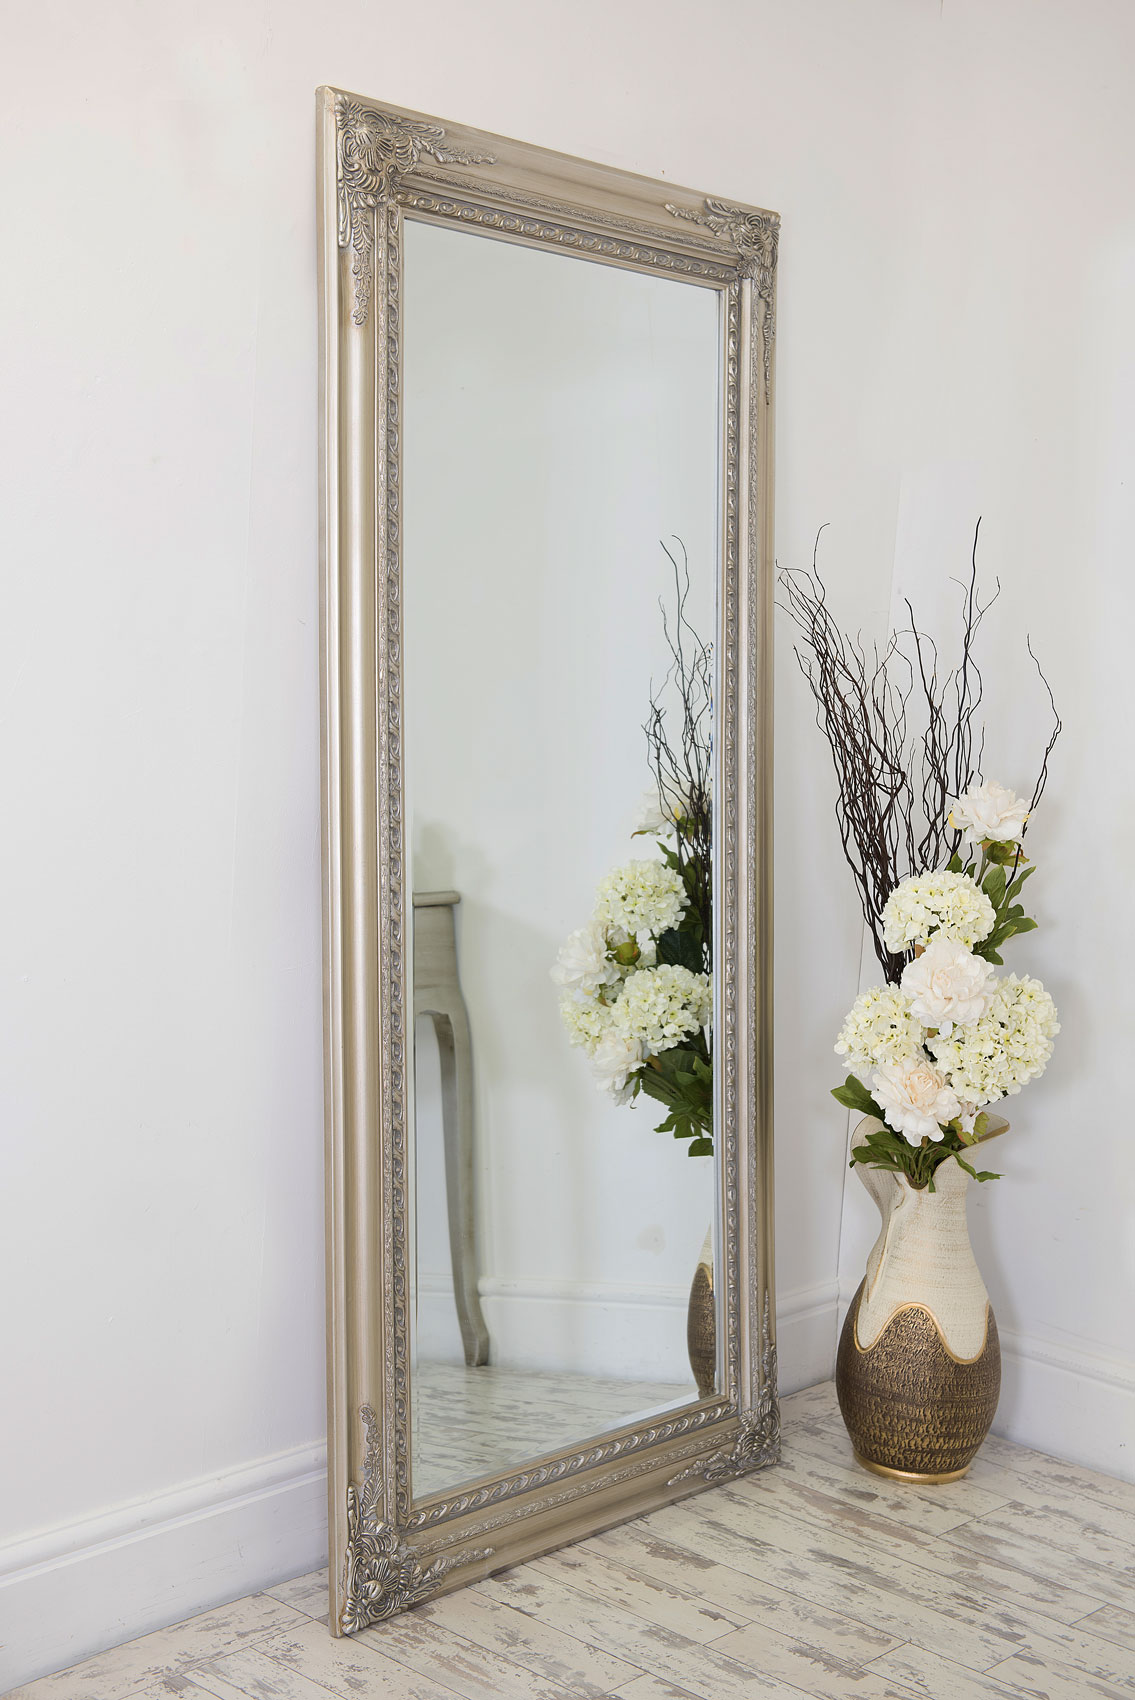 Large silver antique style wall mirror wood 5ft10 x 2ft10 for Big silver wall mirrors